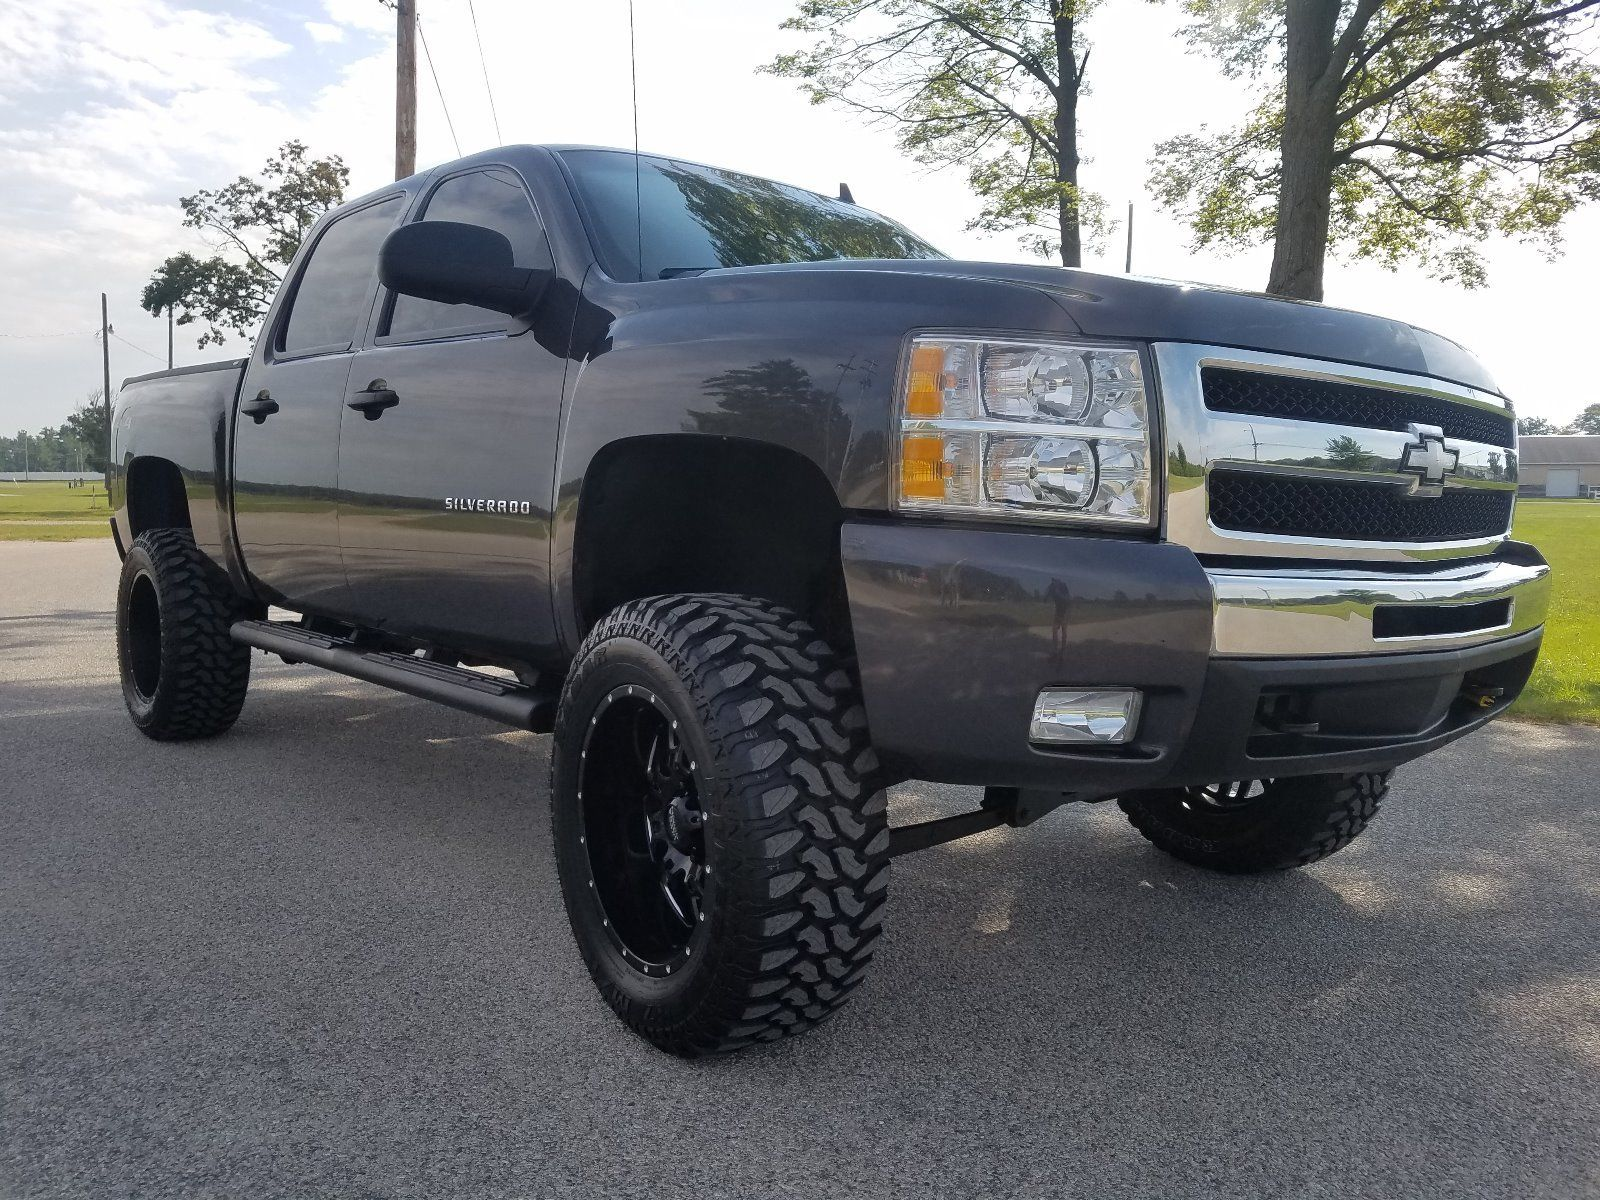 2004 Tahoe Lifted >> professionally built 2011 Chevrolet Silverado 1500 lifted for sale